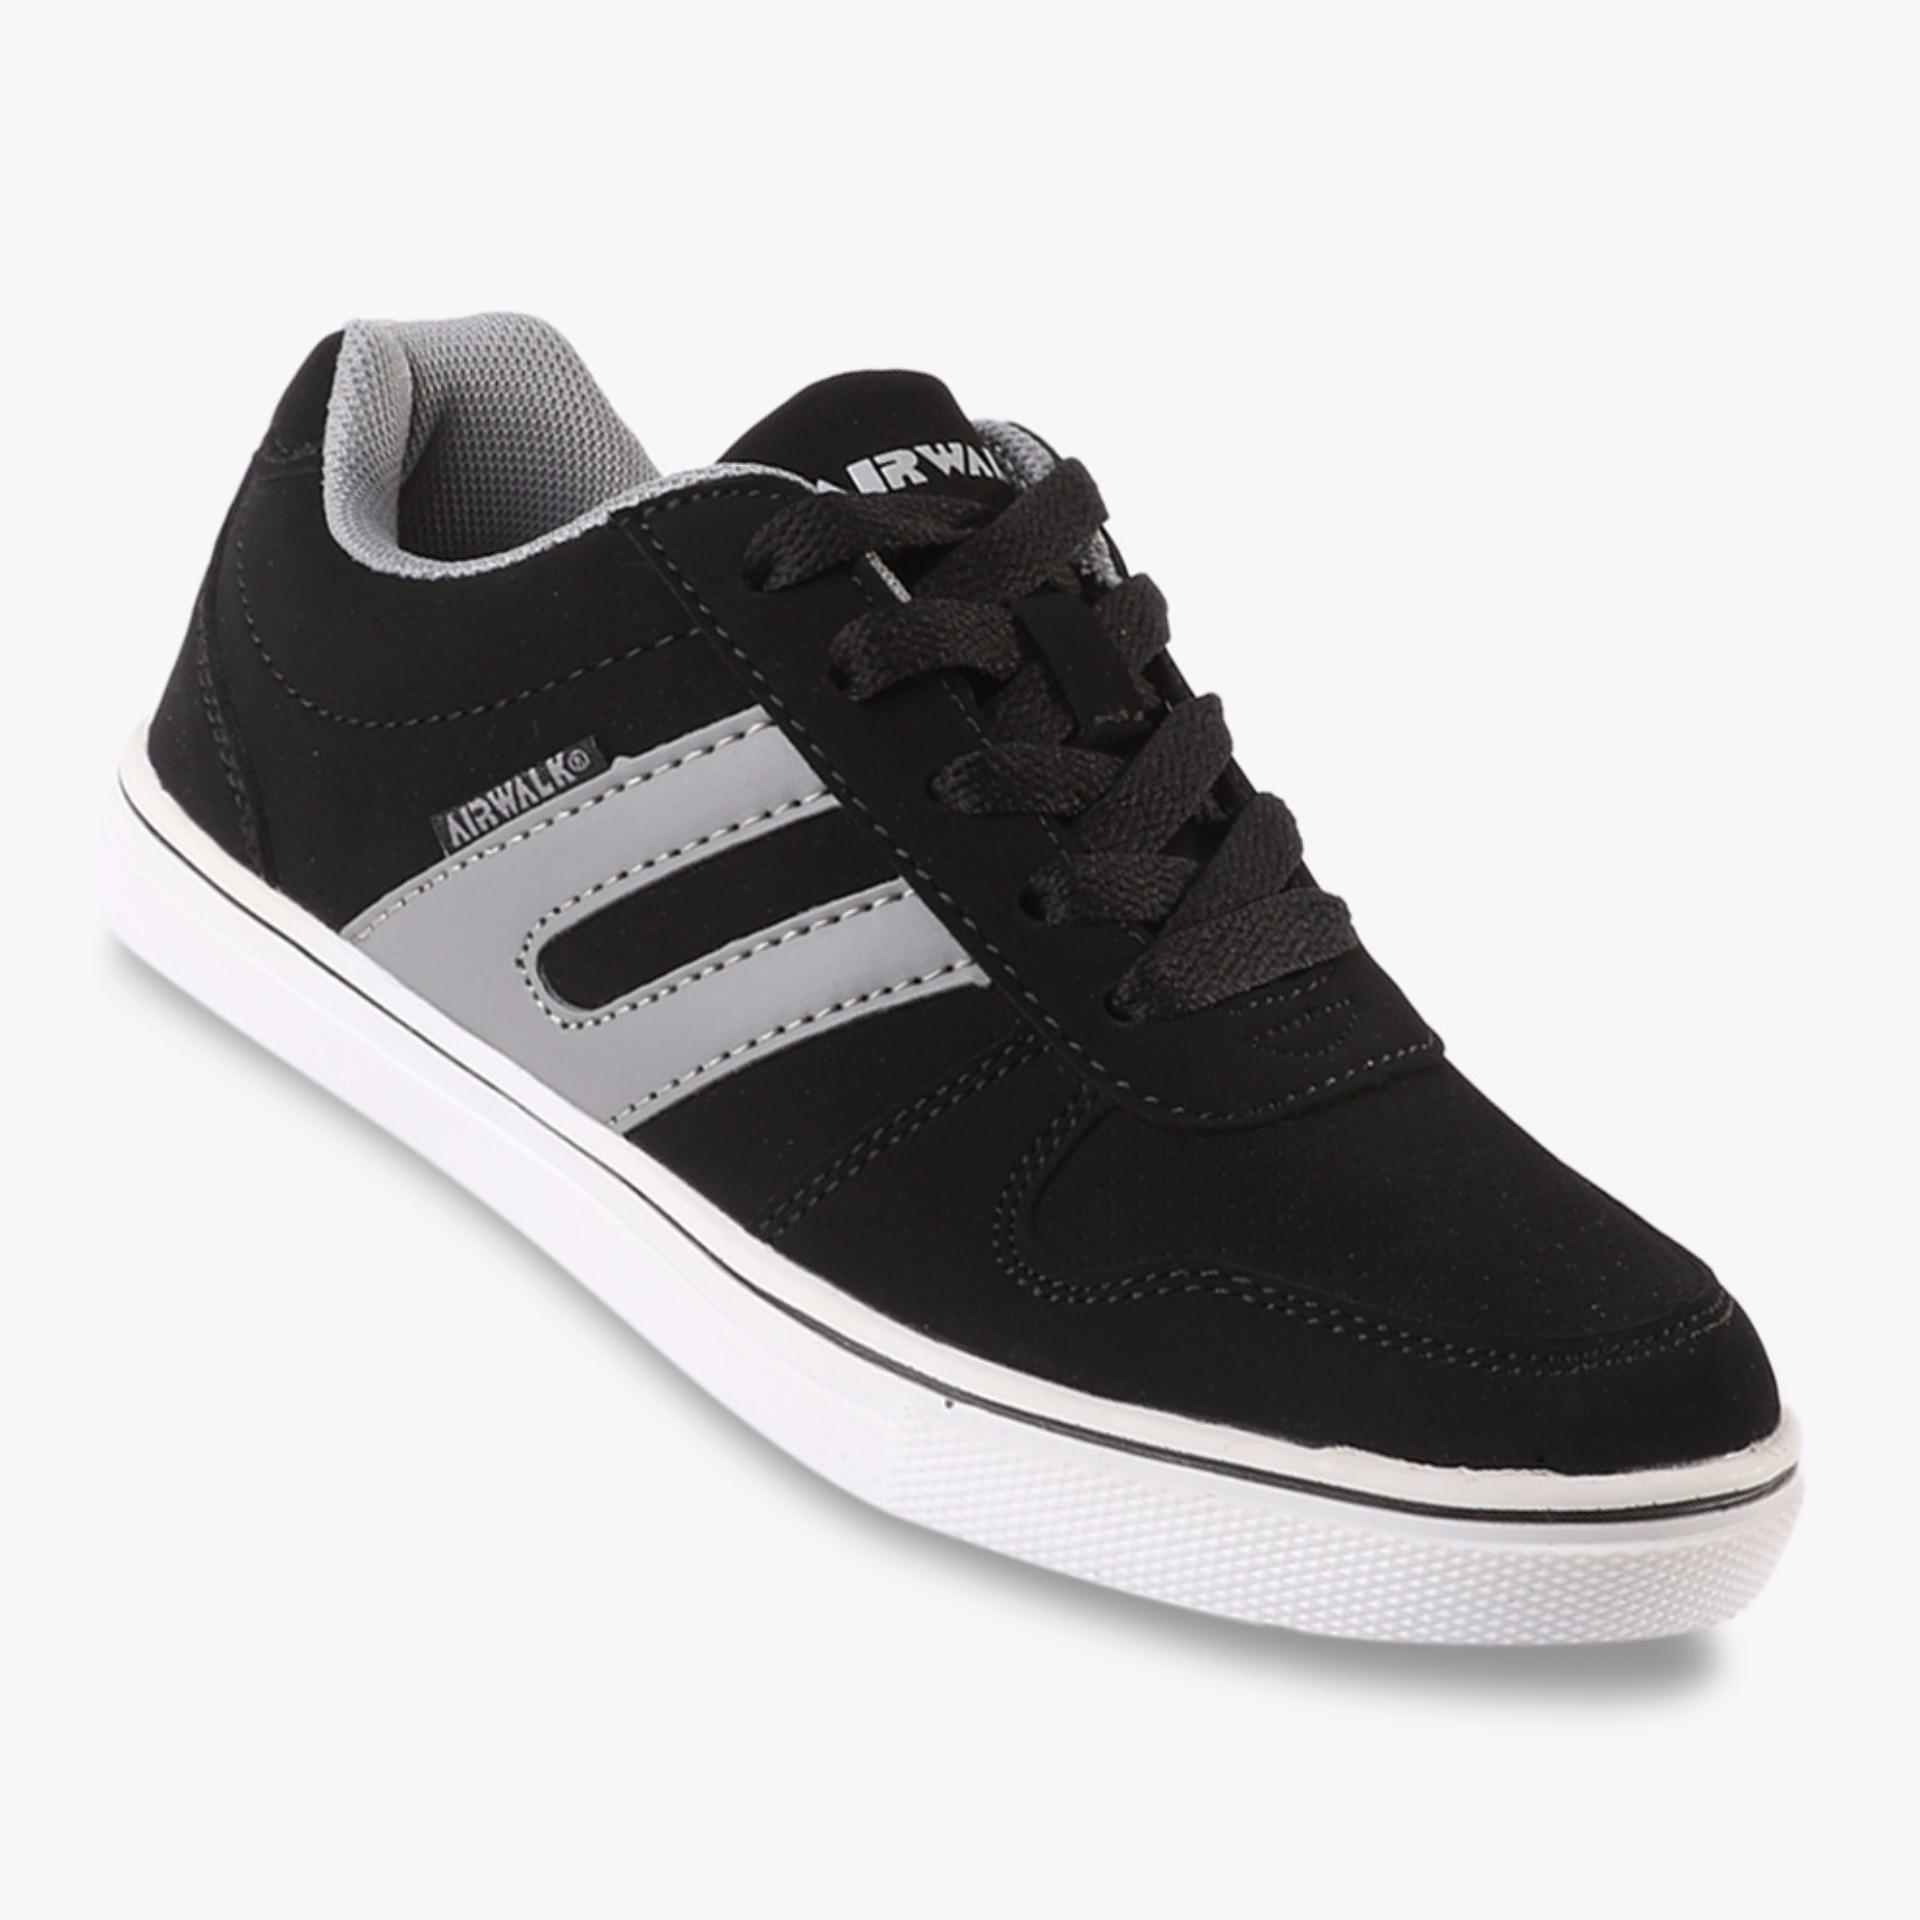 Beli Airwalk Jaky Jr Boys Sneakers Shoes Hitam Nyicil